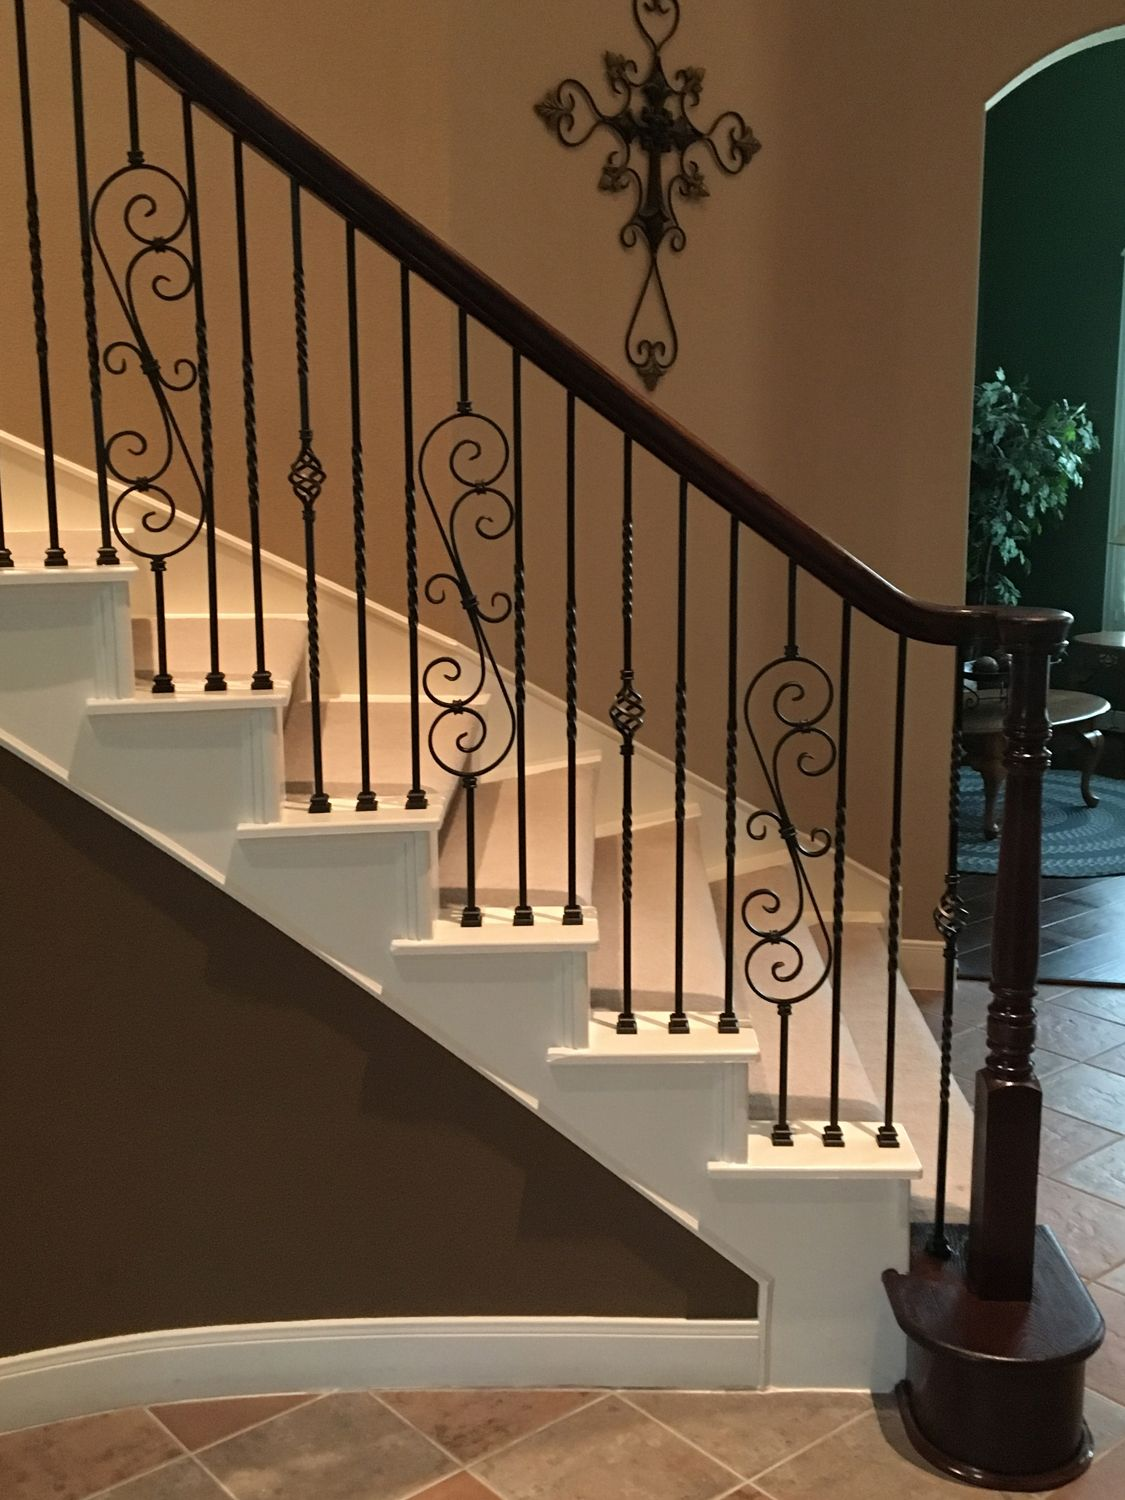 Powder Coated Wrought Iron Balusters From Our Friends At Venetian | Powder Coated Handrails For Stairs | Ornamental Iron | Metal | Deck Railing | Wrought Iron Balusters | Balcony